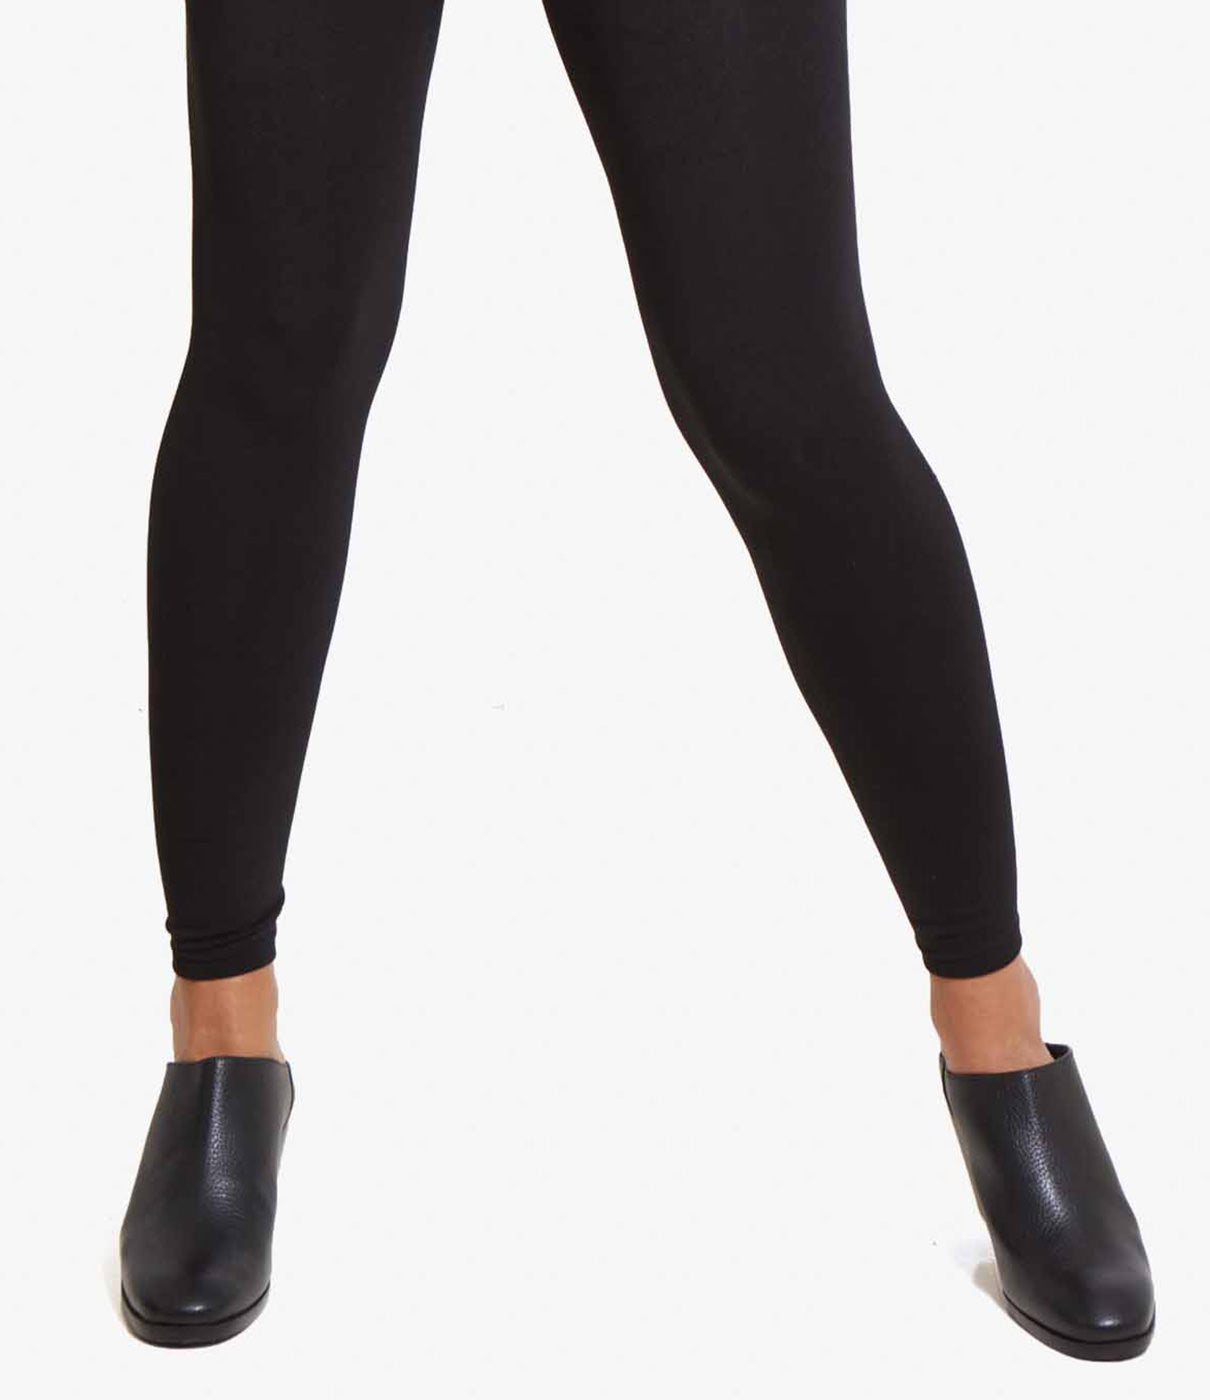 FASHION + FUNCTIONThese tights will keep you warm and supported through the winter and can be worn with anything—even flats or heels thanks to a footless silhouette.